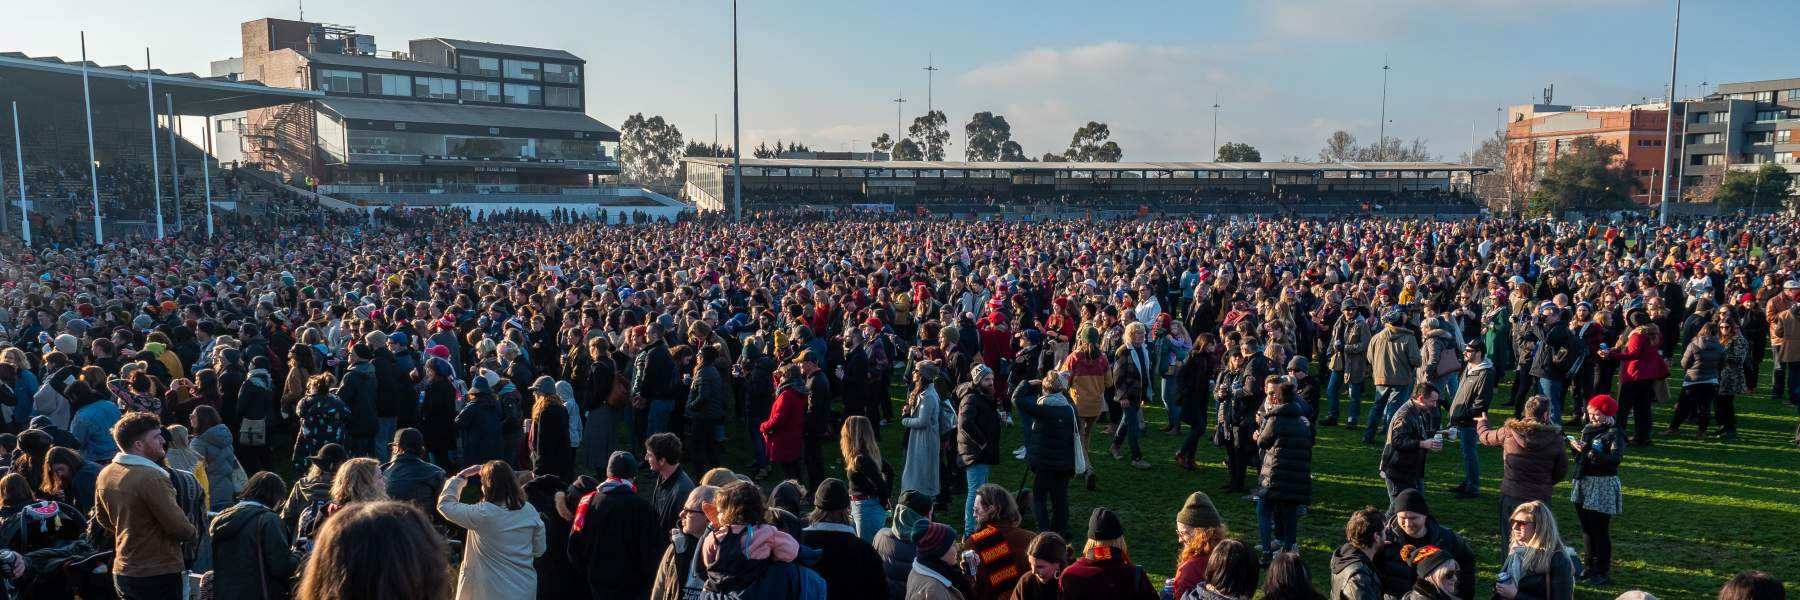 Community Cup Crowd